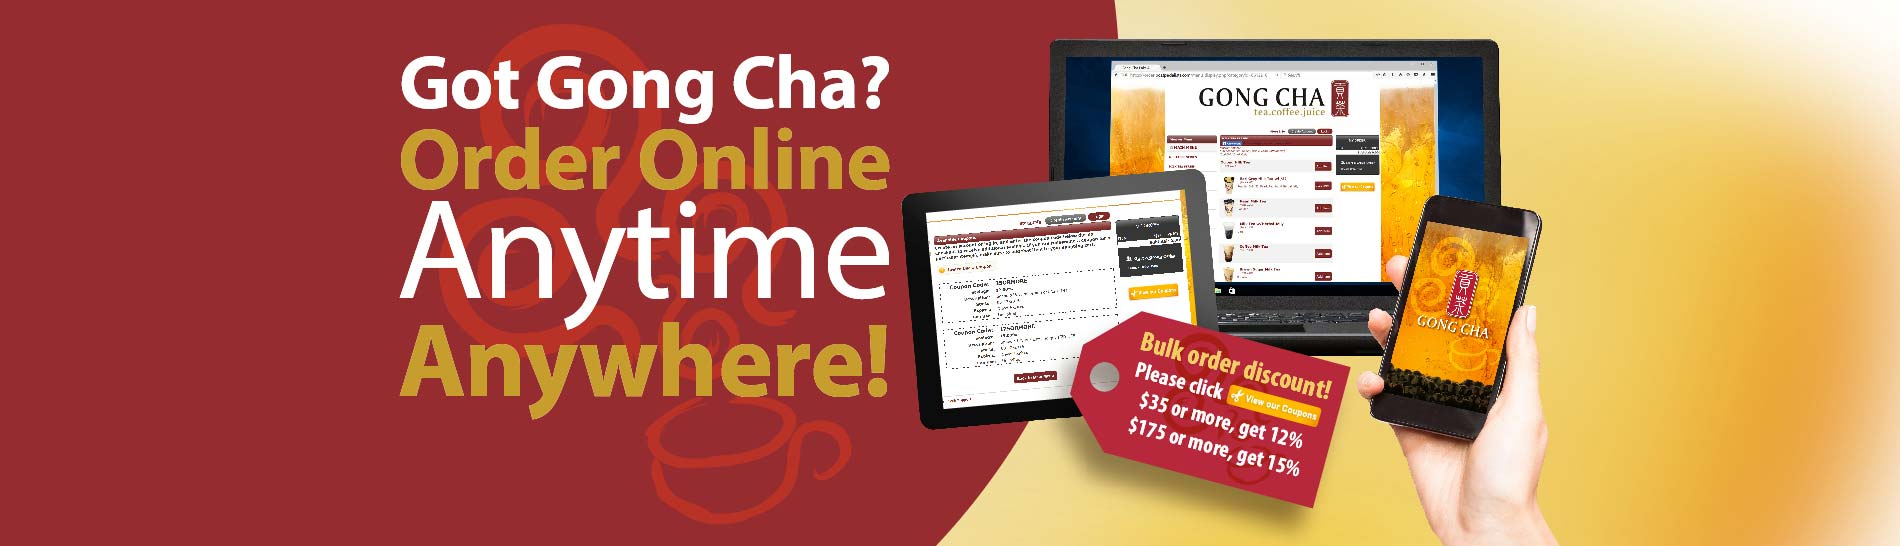 Got Gong Cha? Order Online Anytime Anywhere!